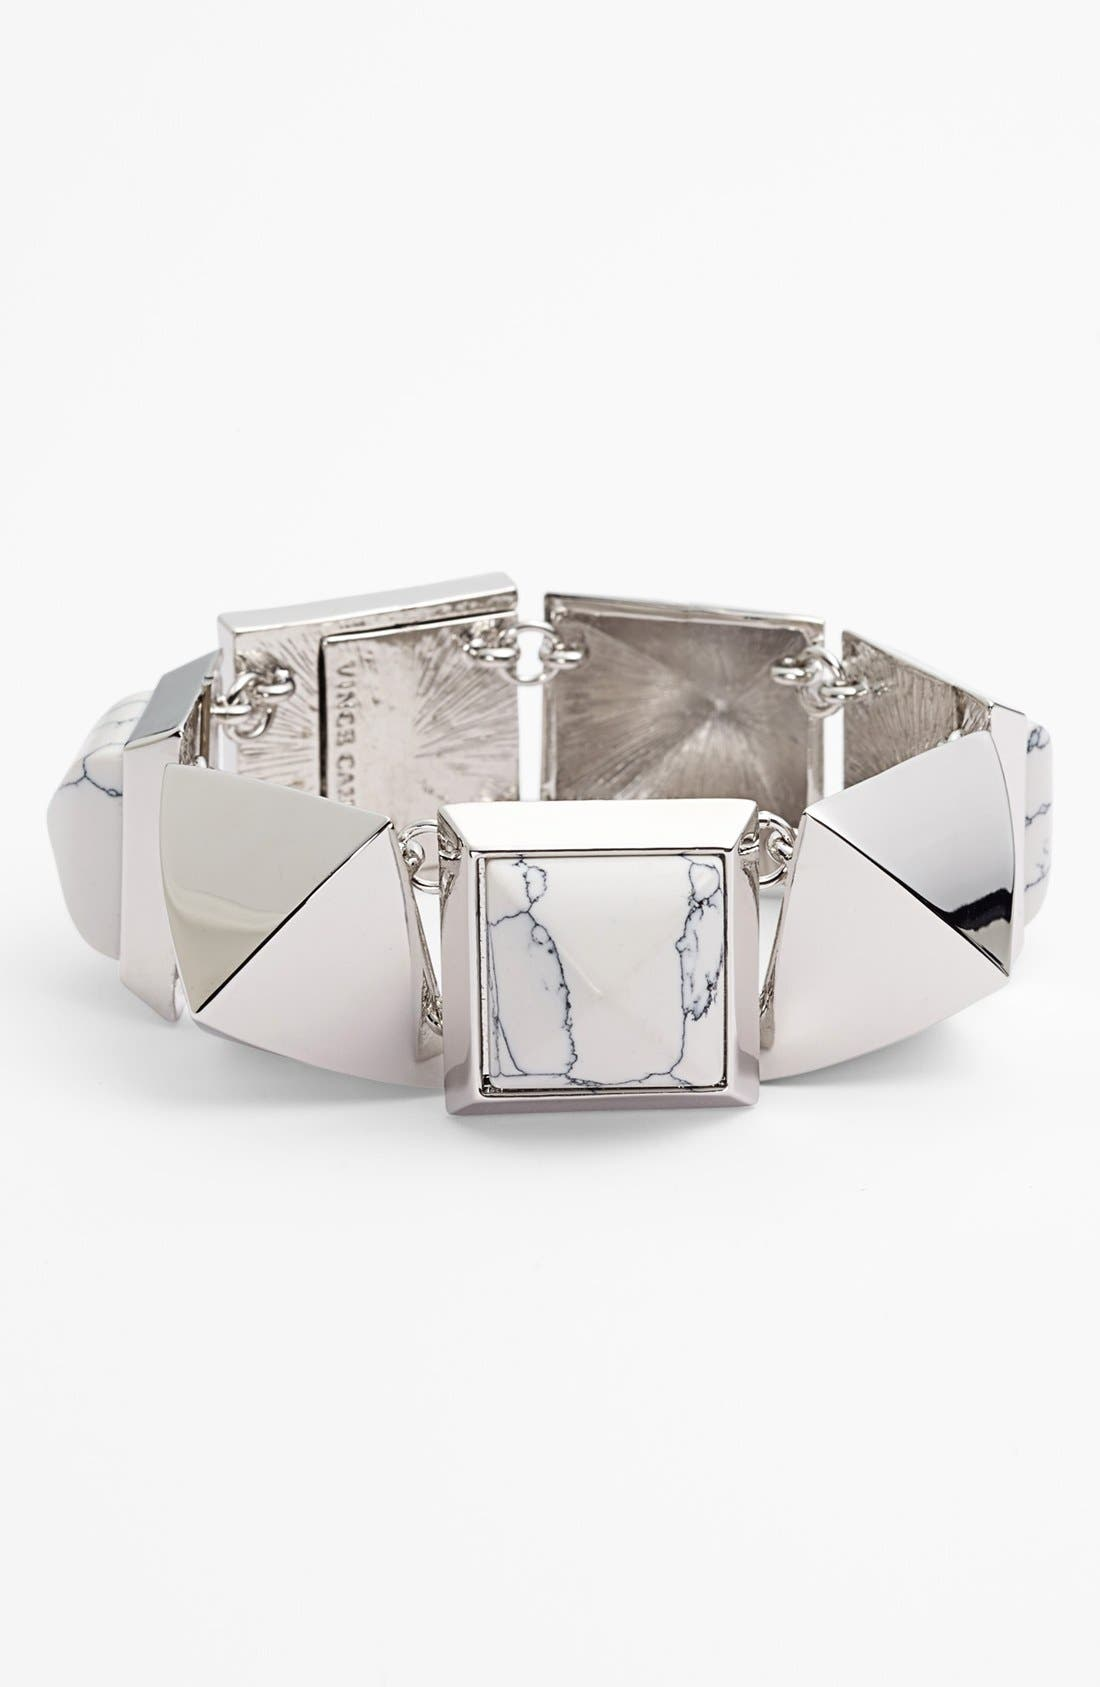 Main Image - Vince Camuto 'Clearview' Pyramid Bracelet